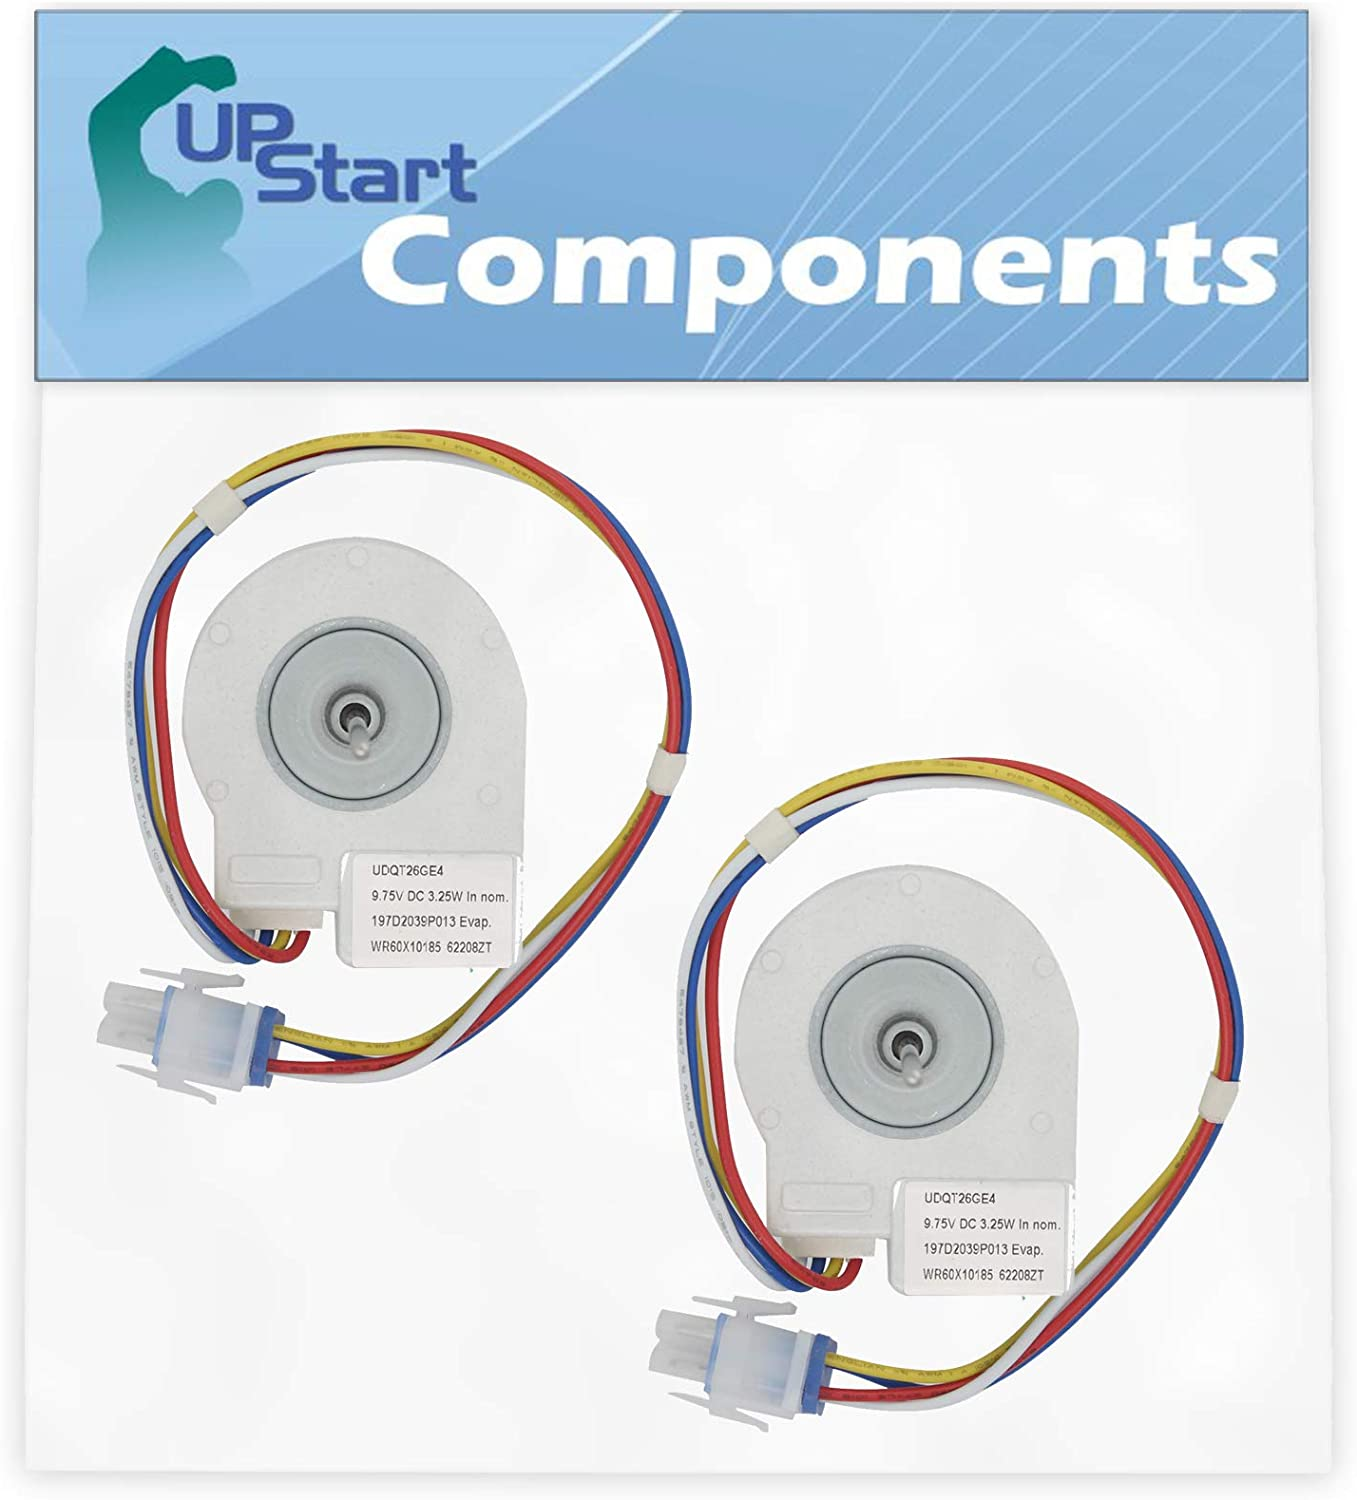 AH1019114 PS1019114 197D2039P007 197D2039P008 2-Pack WR60X10185 Evaporator Fan Motor Replacement for General Electric Refrigerator EA1019114 Compatible with Part Number AP3875639 1170107